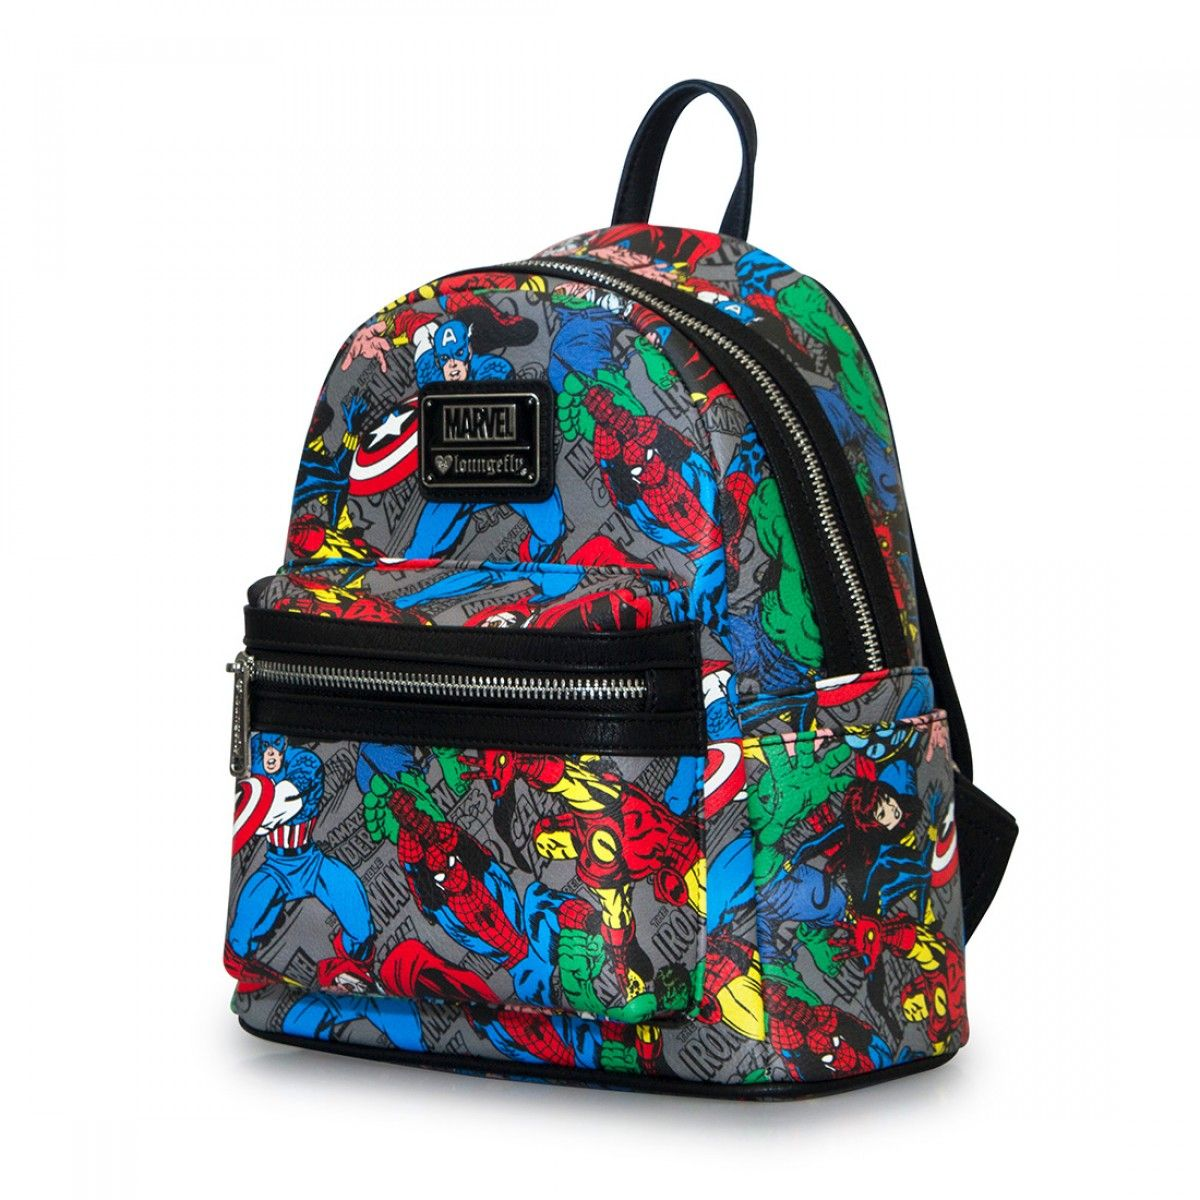 Loungefly x Marvel Character Print Mini Faux Leather Backpack - Marvel -  Brands 5a58c0e591c66